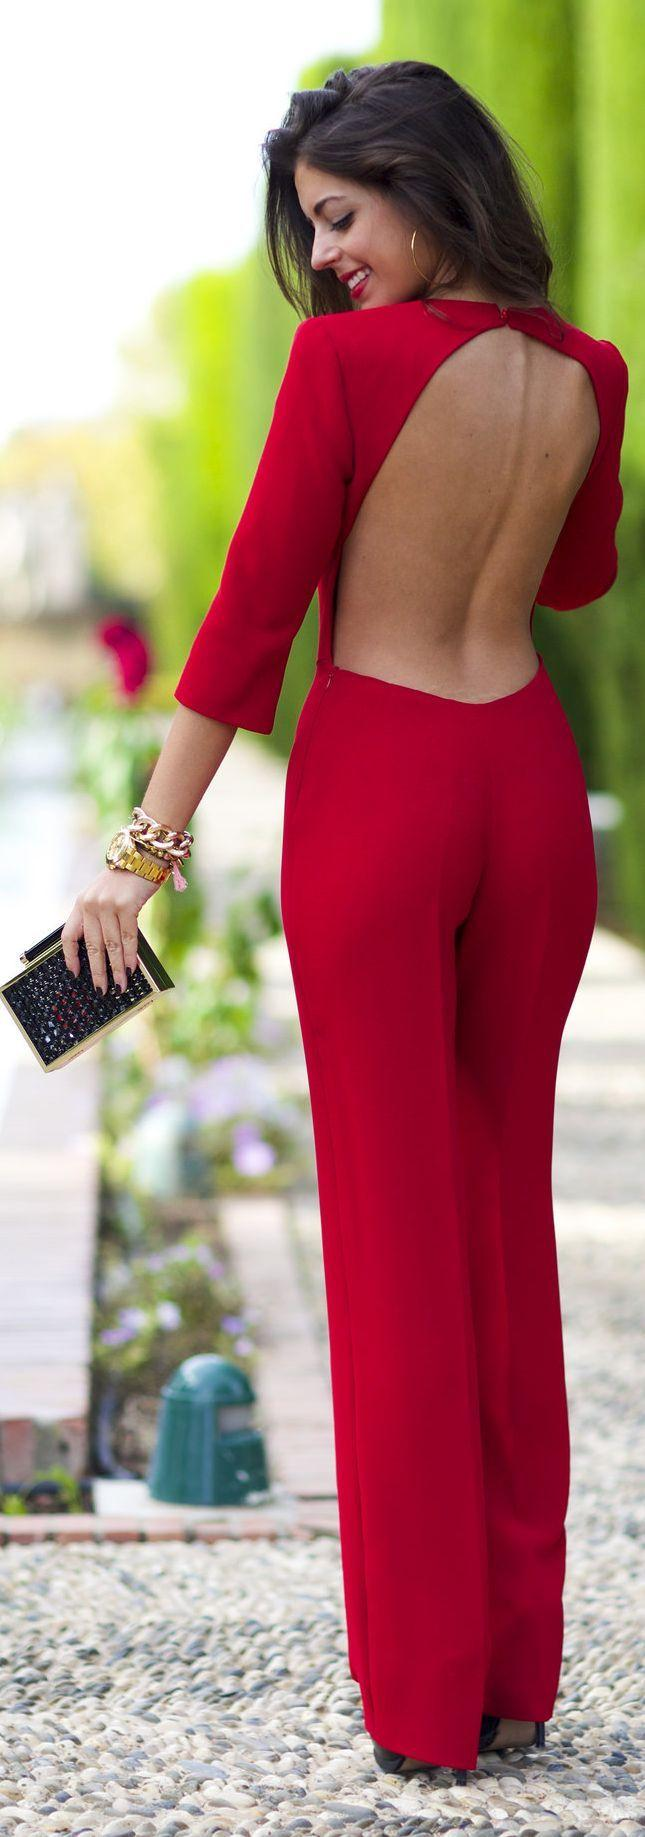 زفاف - Red Backless Cocktail Jumpsuit